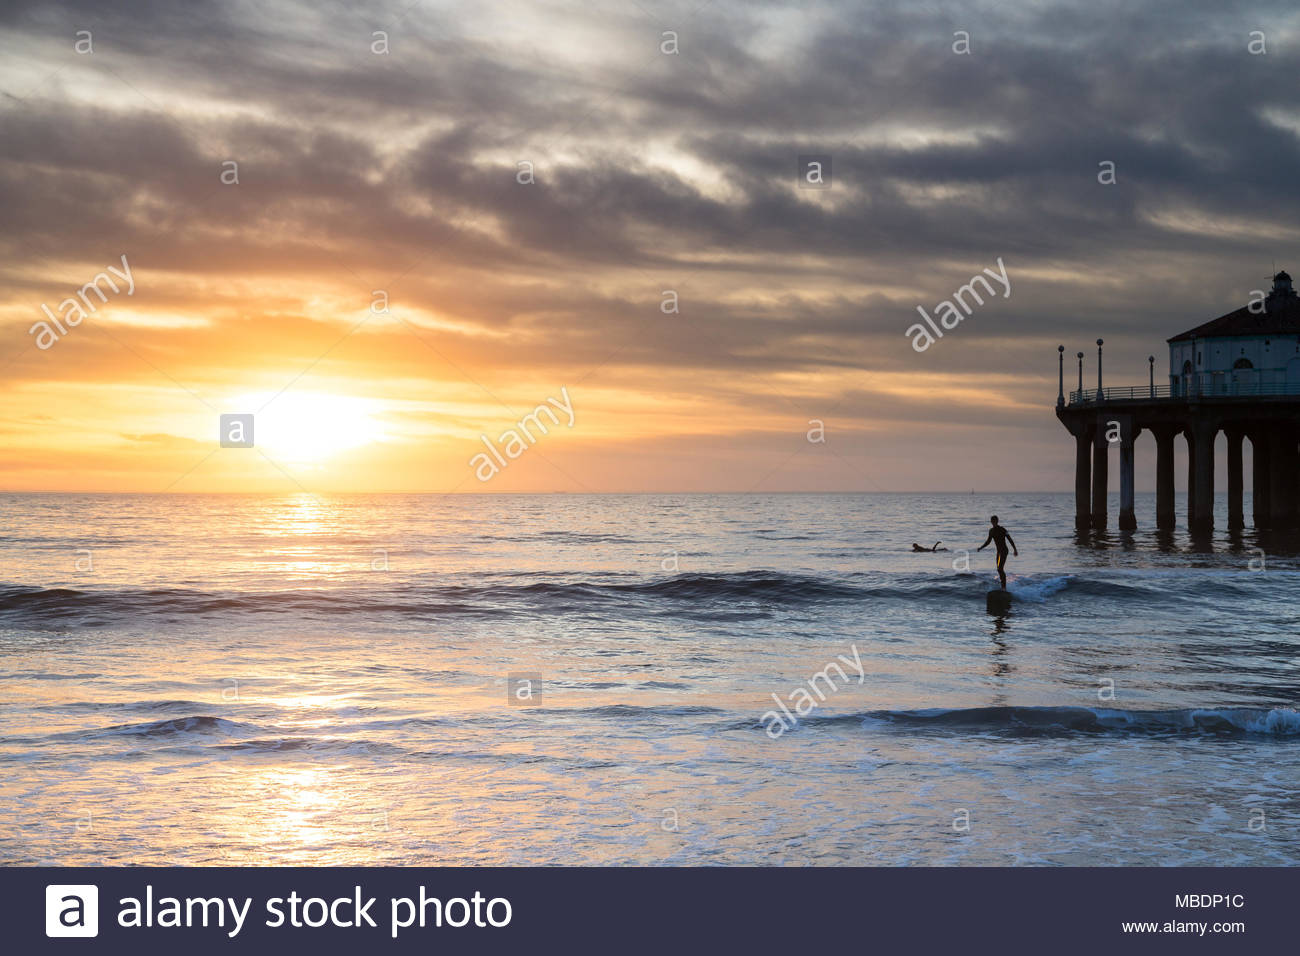 A longboard surfer catches one last wave next to the Manhattan Beach Pier on a cloudy day. - Stock Image